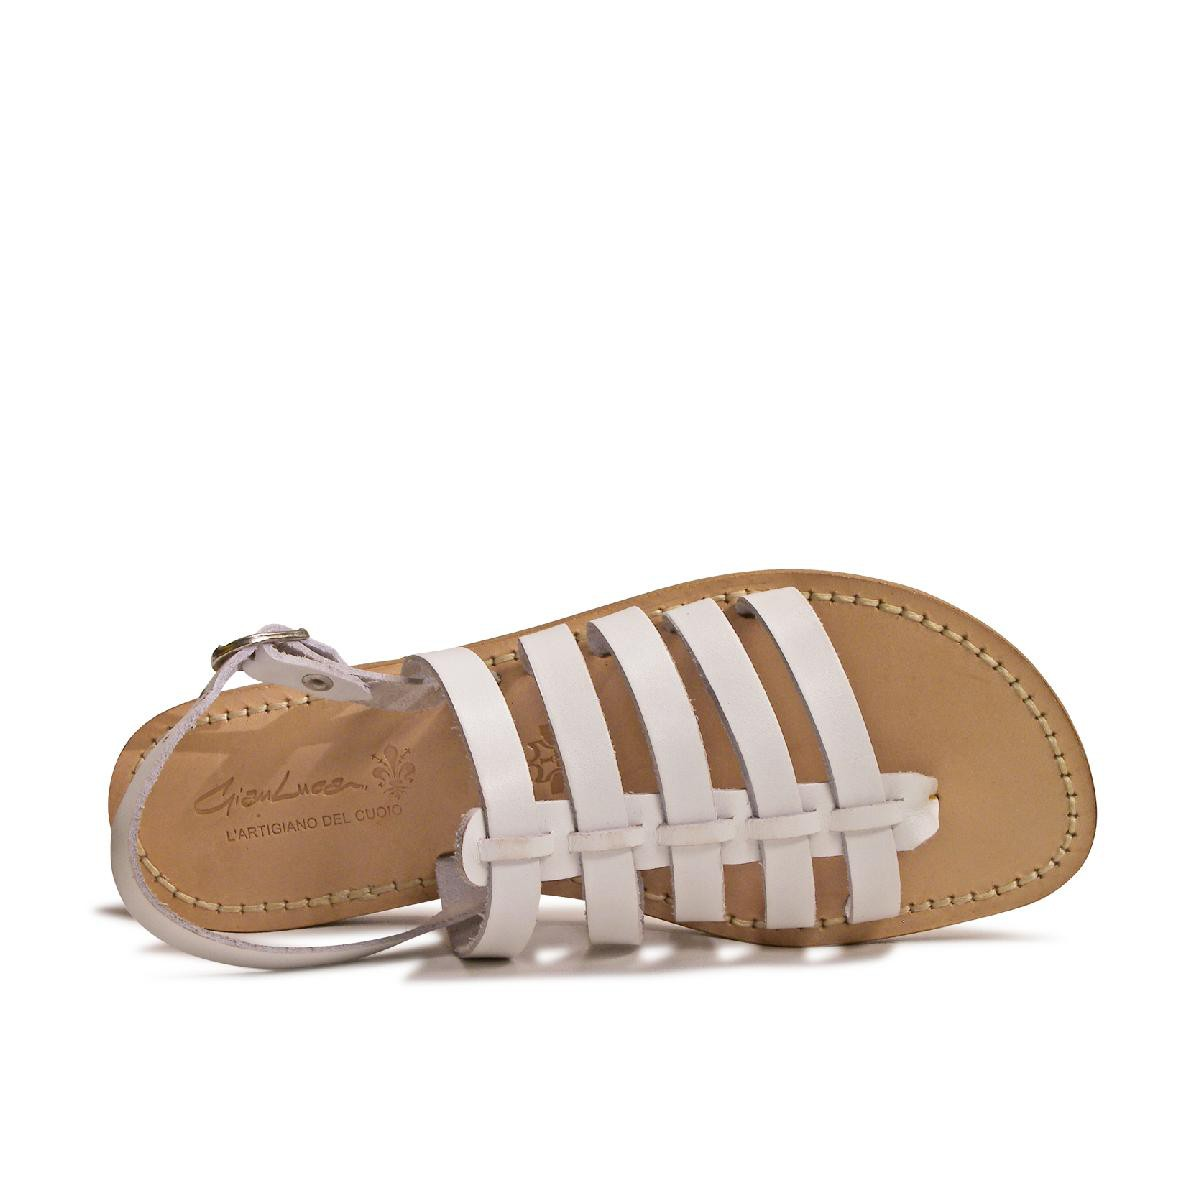 be0aad4dfc28 Flat white sandals for women in real leather Handmade in Italy. Previous.  Next